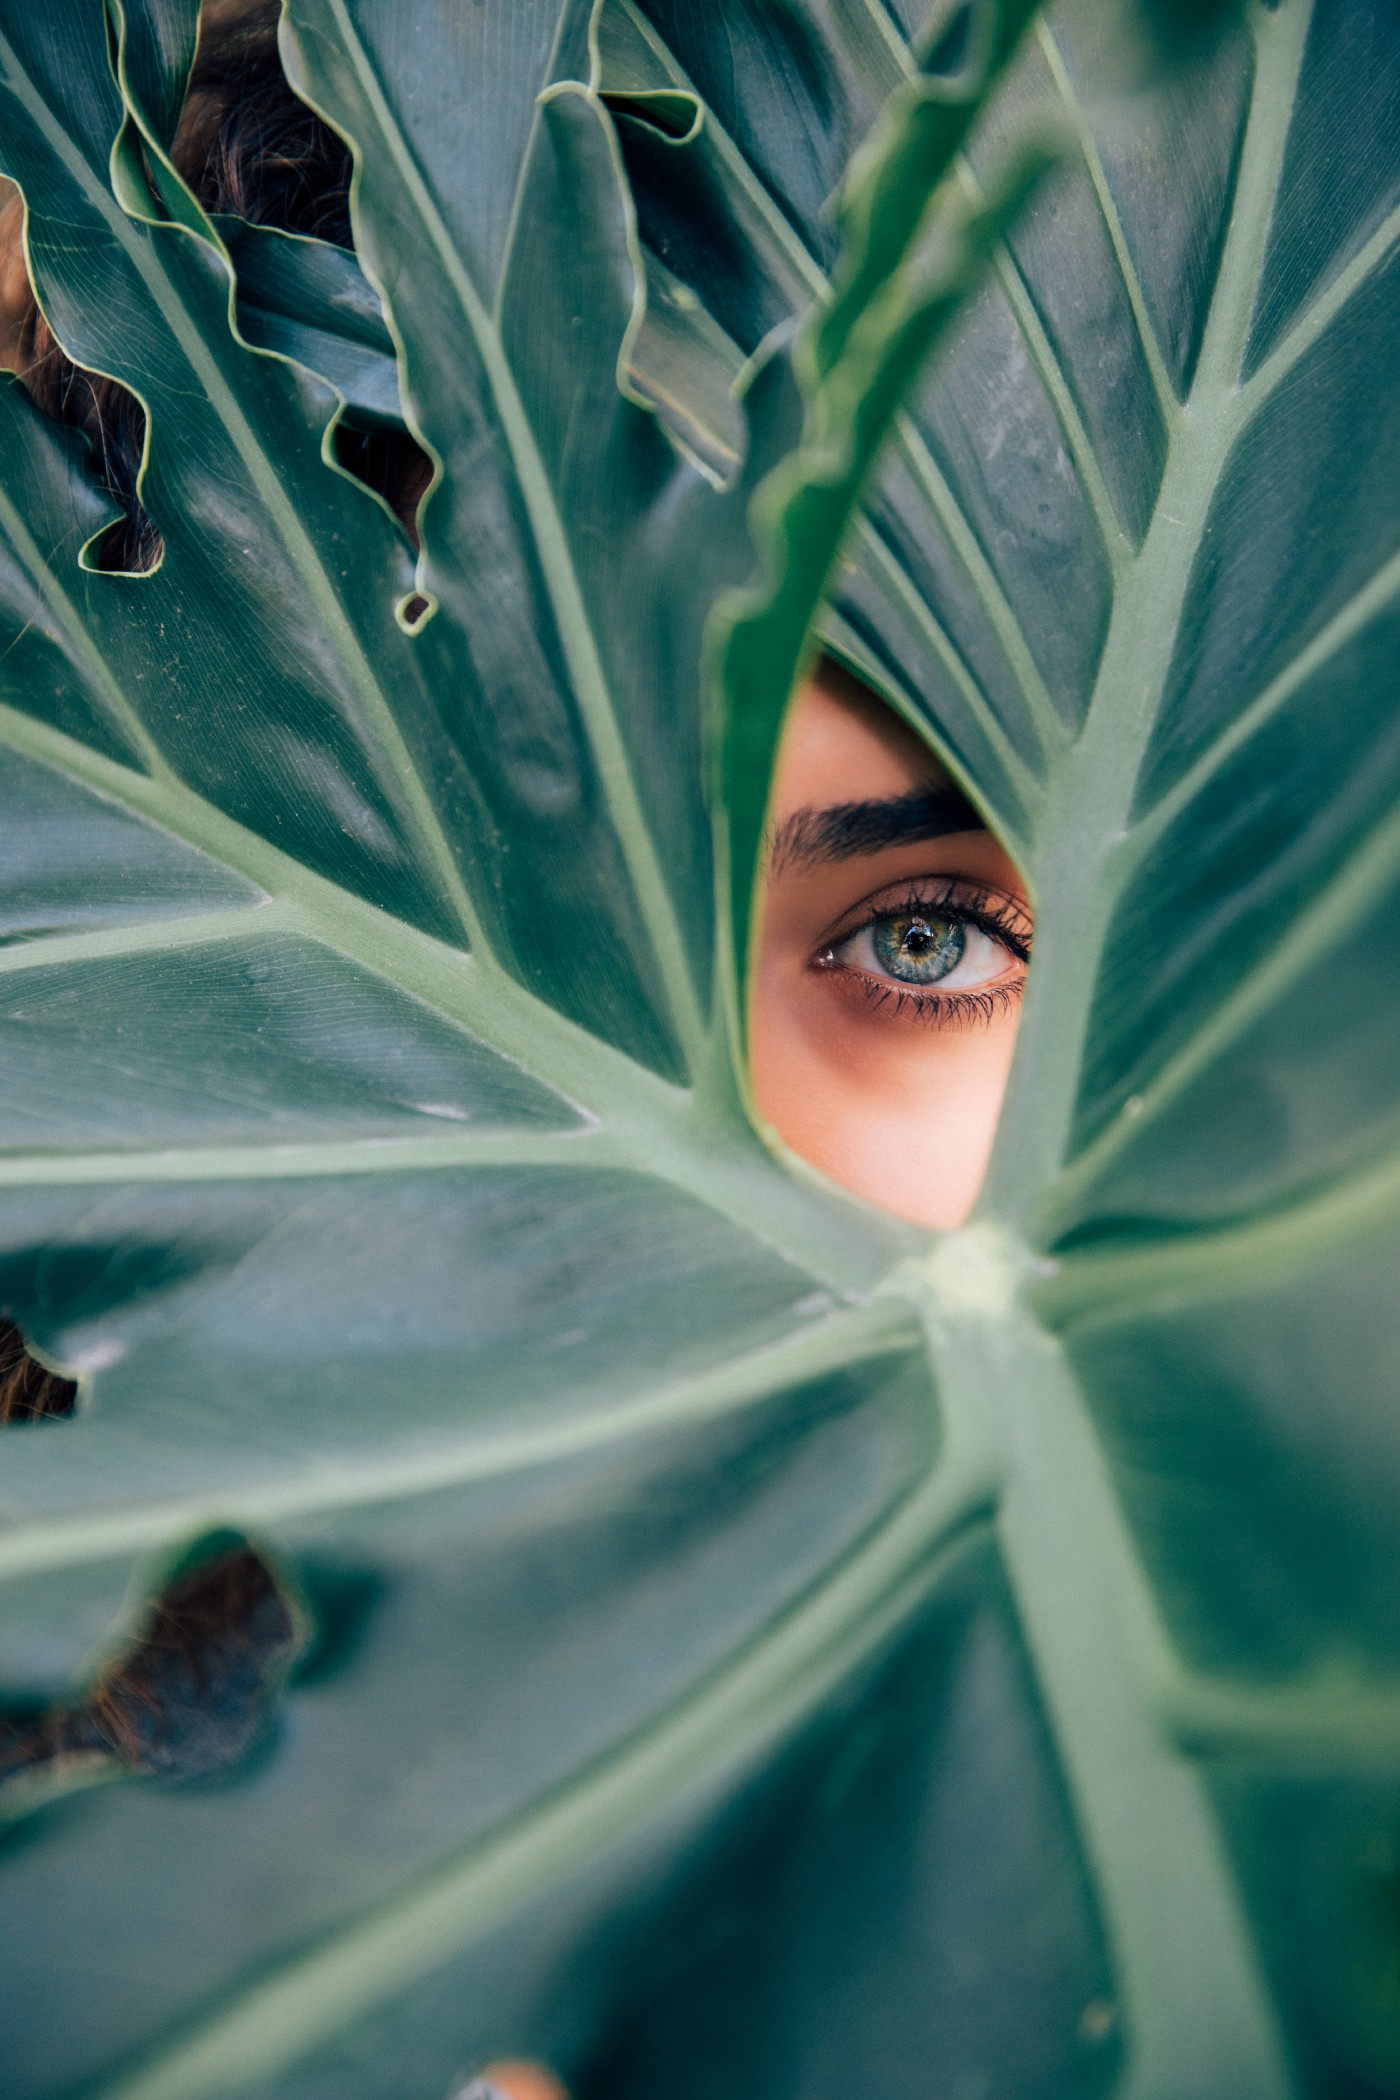 Blue-eyed, dark-haired, female's eye peeking between a gap in some large green palm leaf; she is looking up and slightly away from the camera.